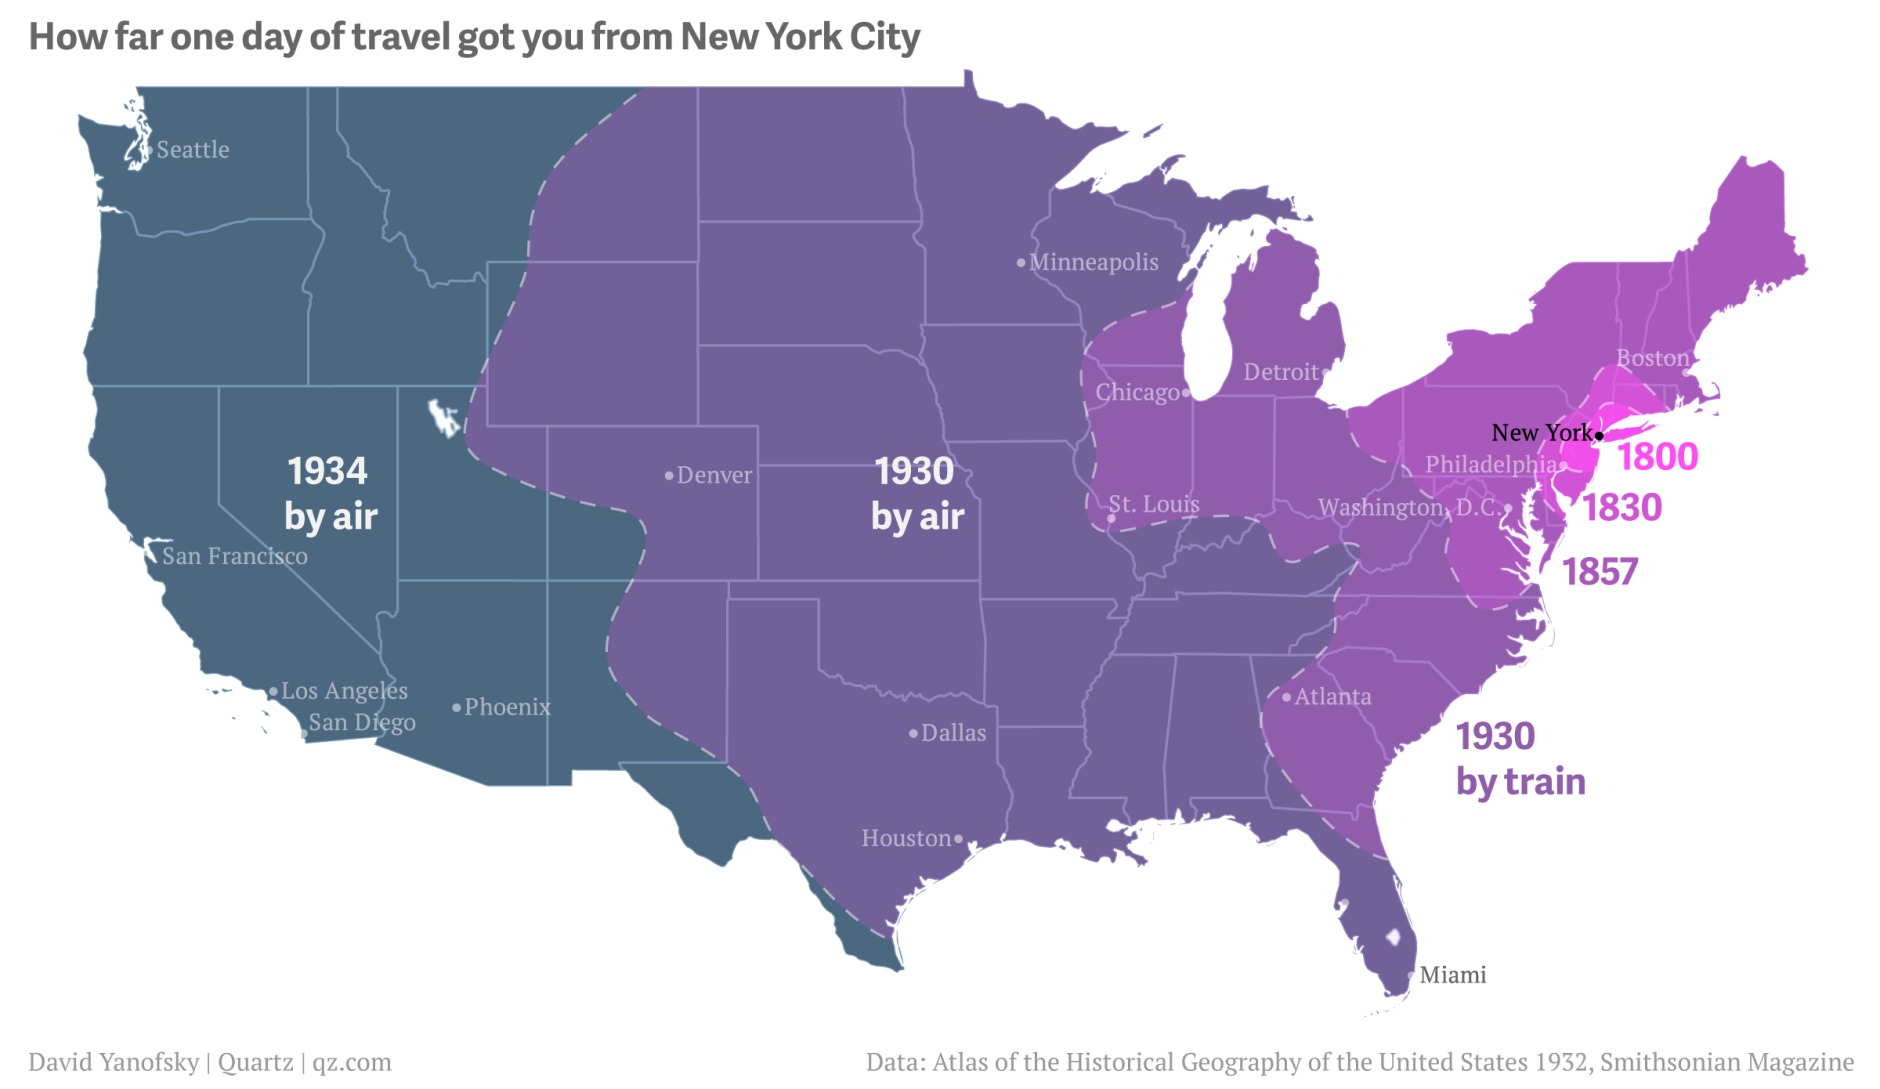 How Far From NYC You Could Travel in One Day Between 1800 and 1934     Posted On Wed  February 24  2016 By Dana Schulz In History  maps   Transportation